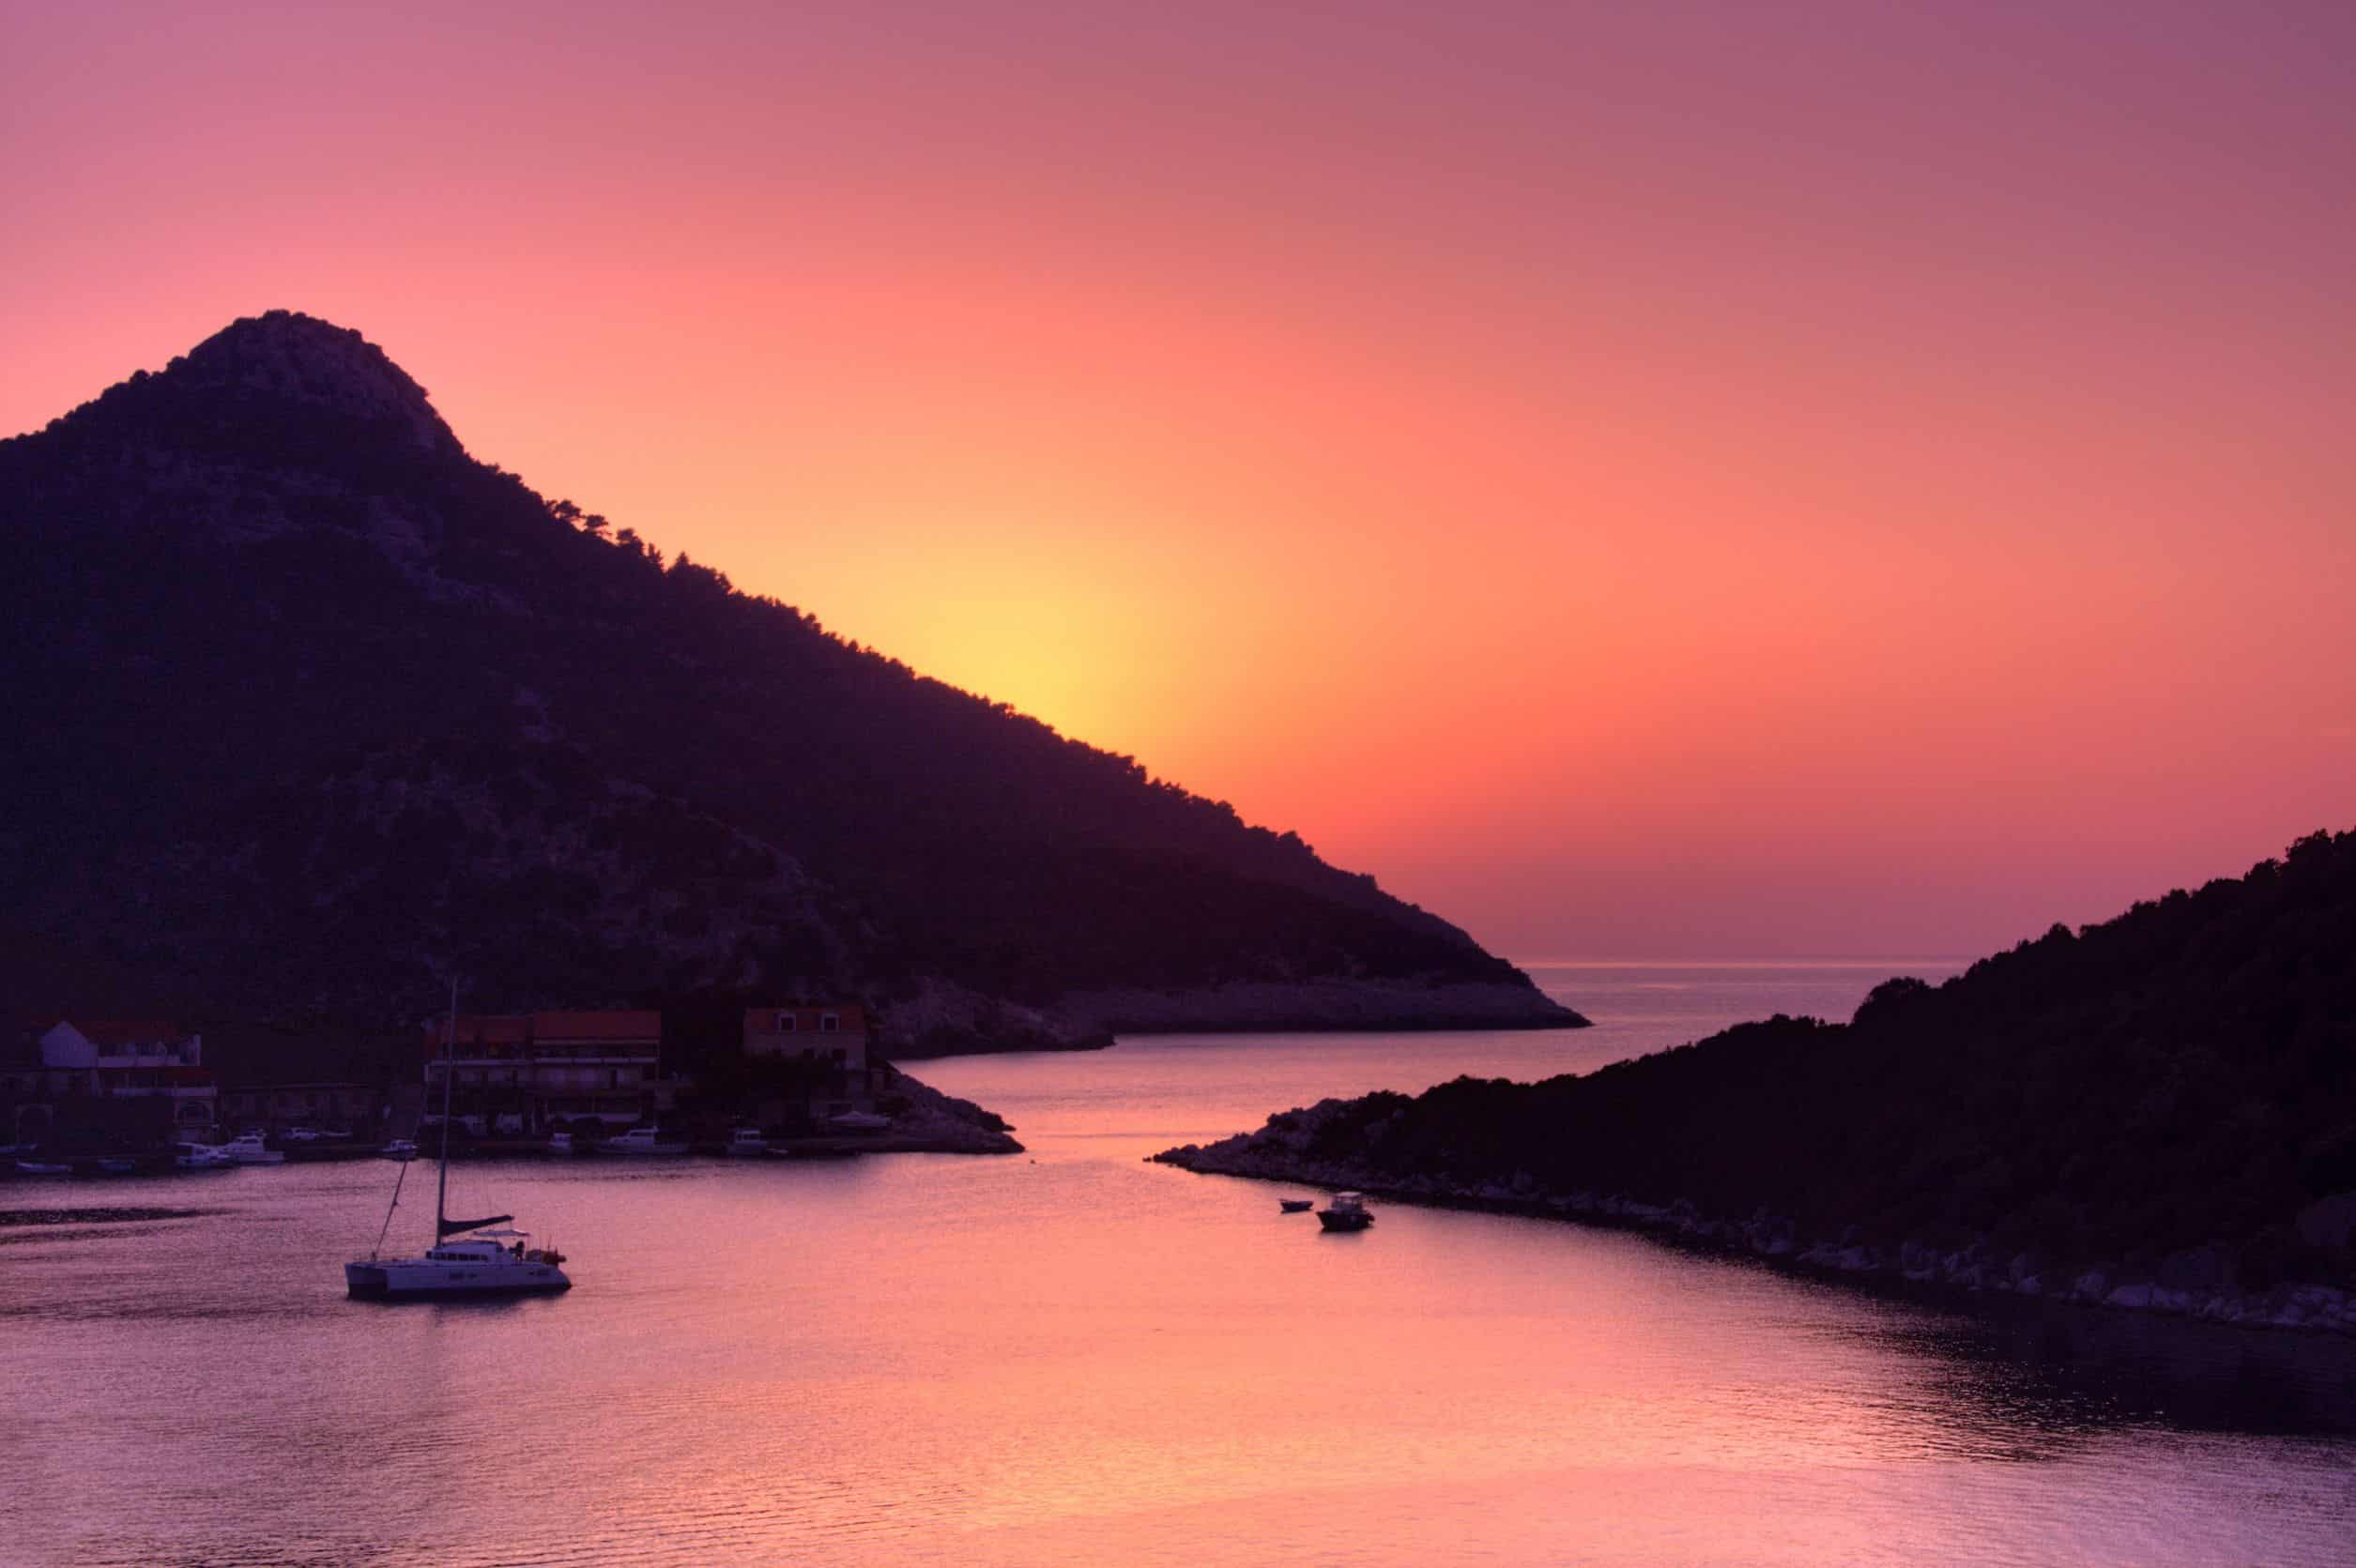 lastovo sunset